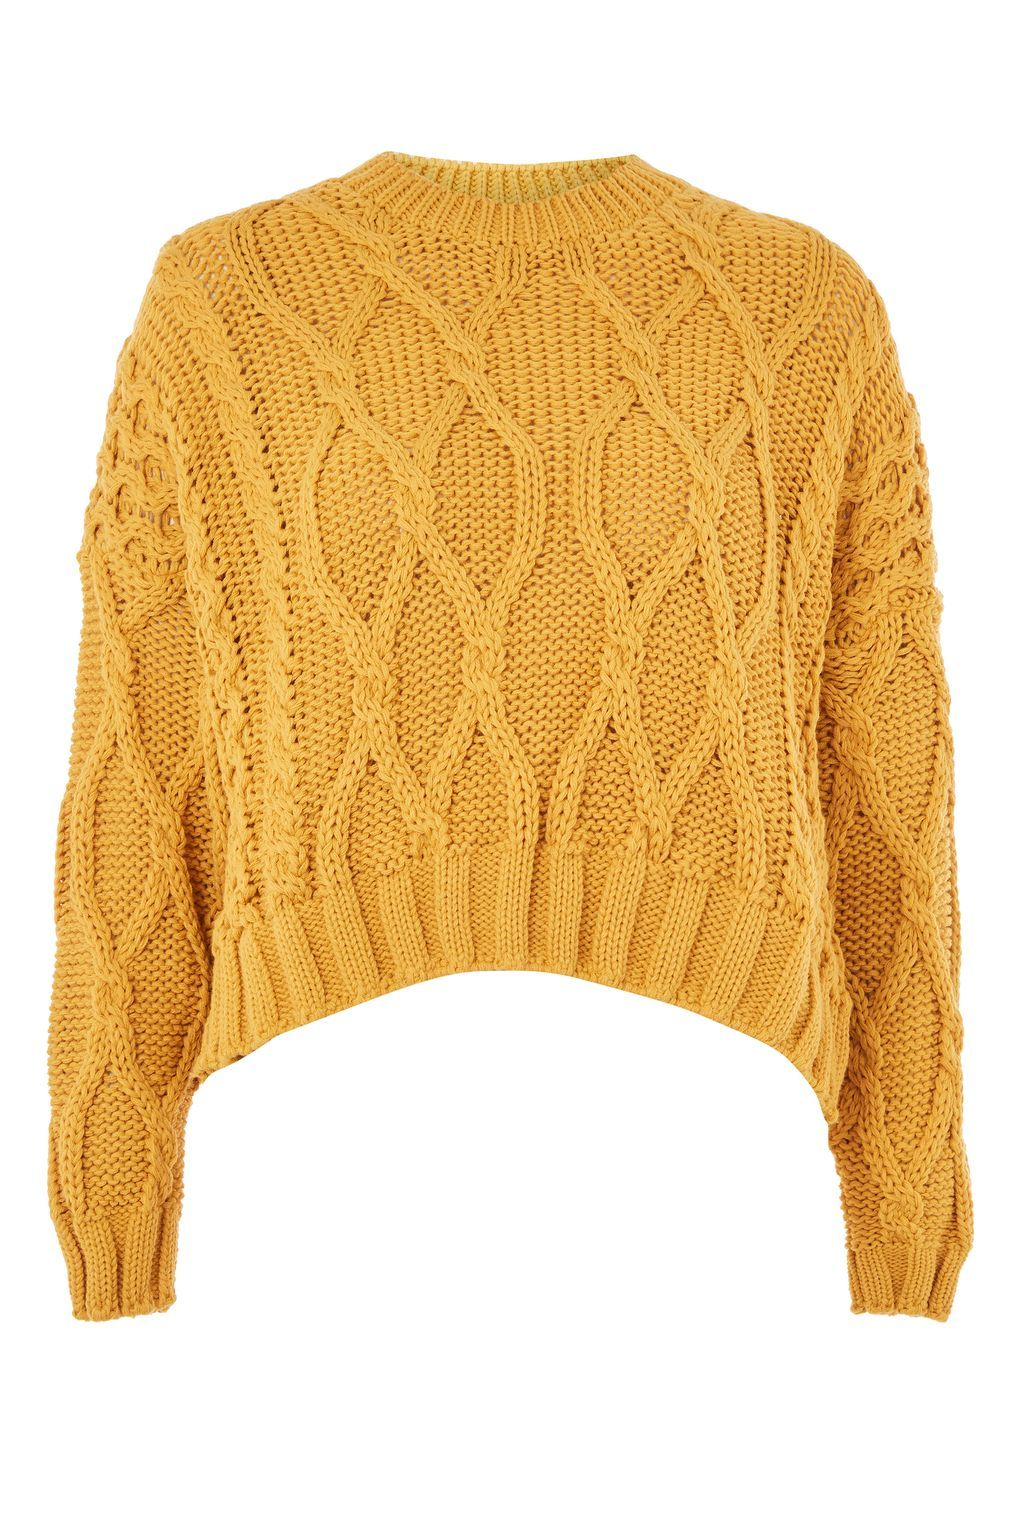 1b541366bd6 Cropped Cable Sweater | Clothes | Chunky cable knit sweater, Cable ...